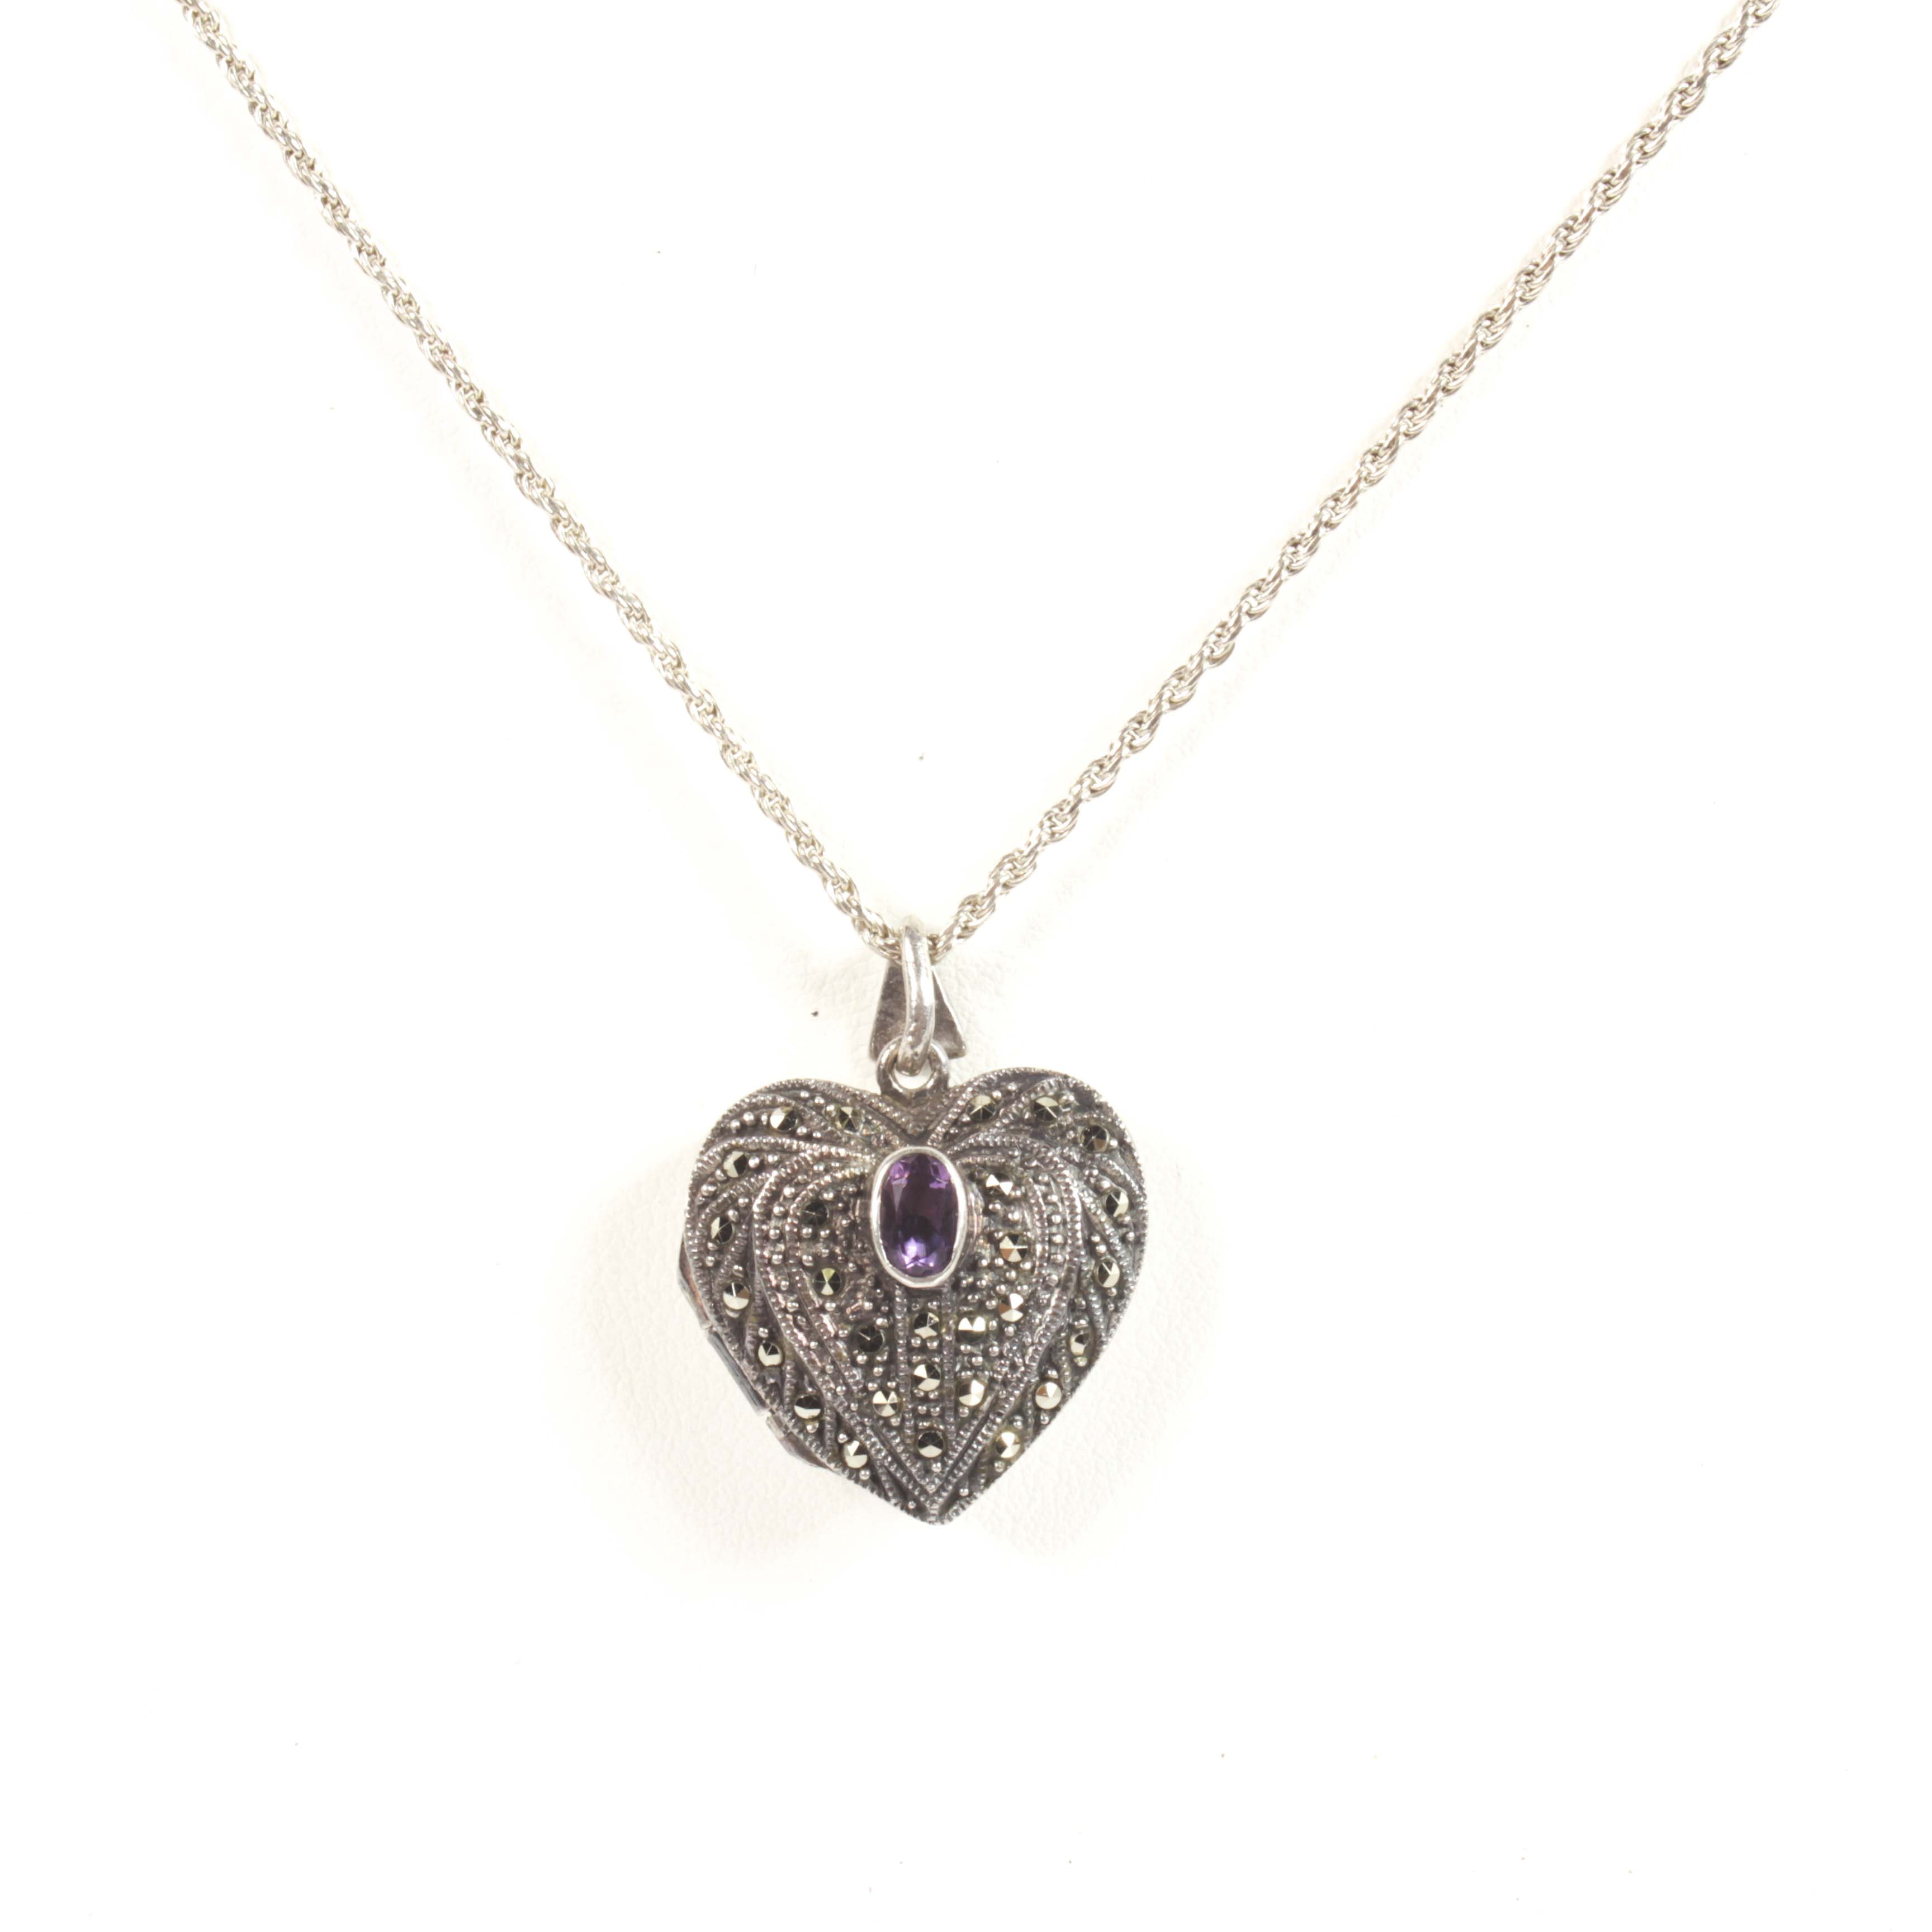 Sterling Silver, Amethyst and Marcasite Heart Locket Pendant Necklace